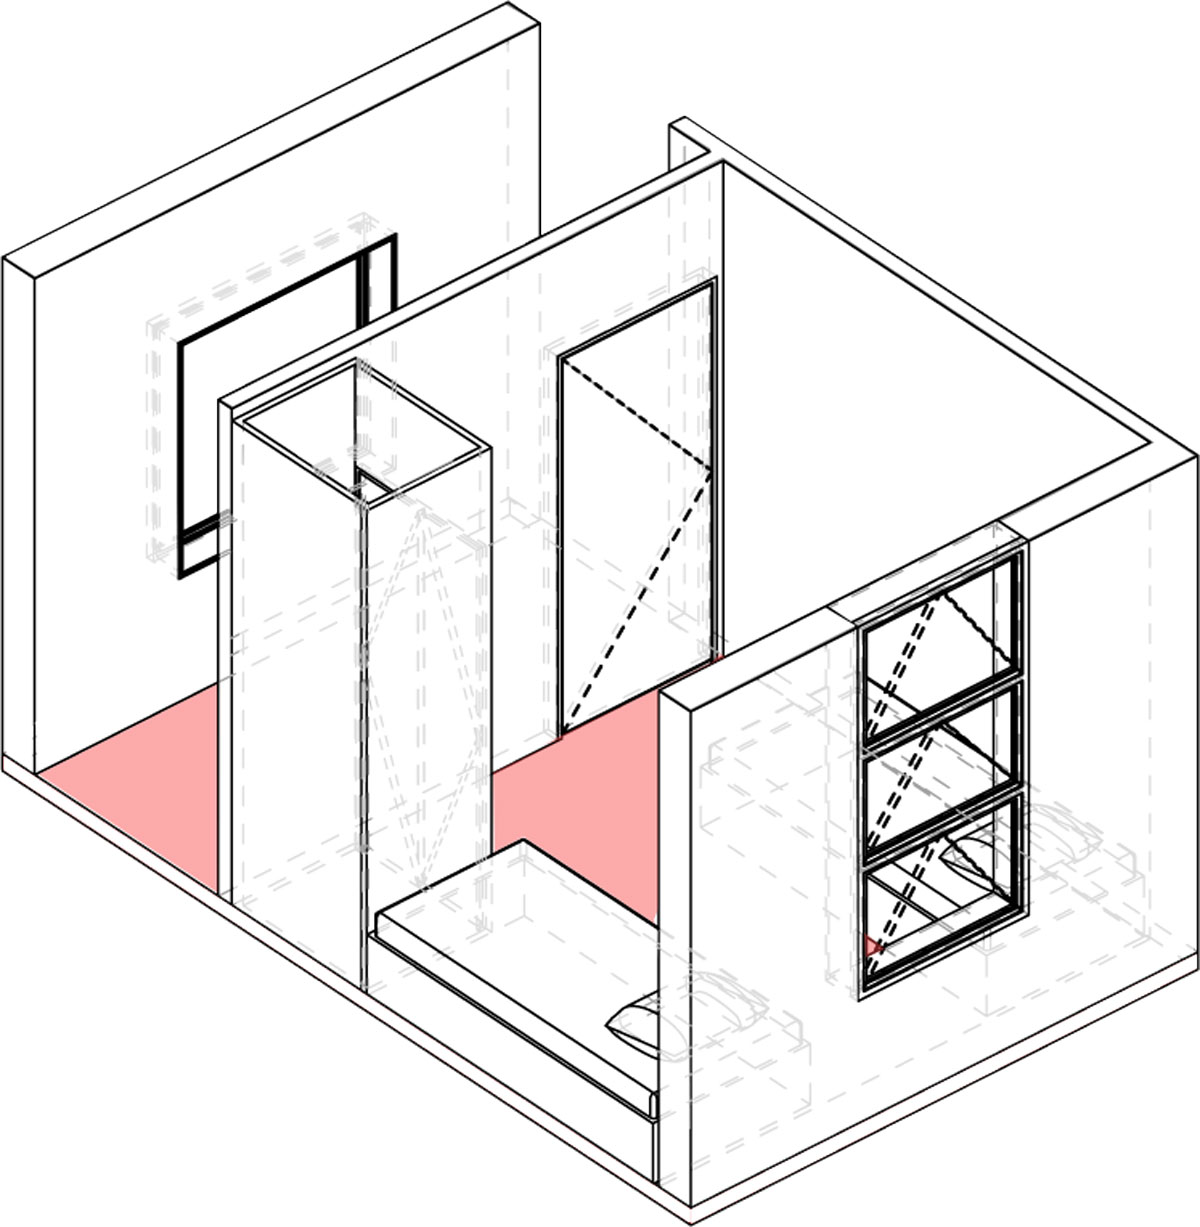 Axonometric projection of small bedroom and dividing walllink module